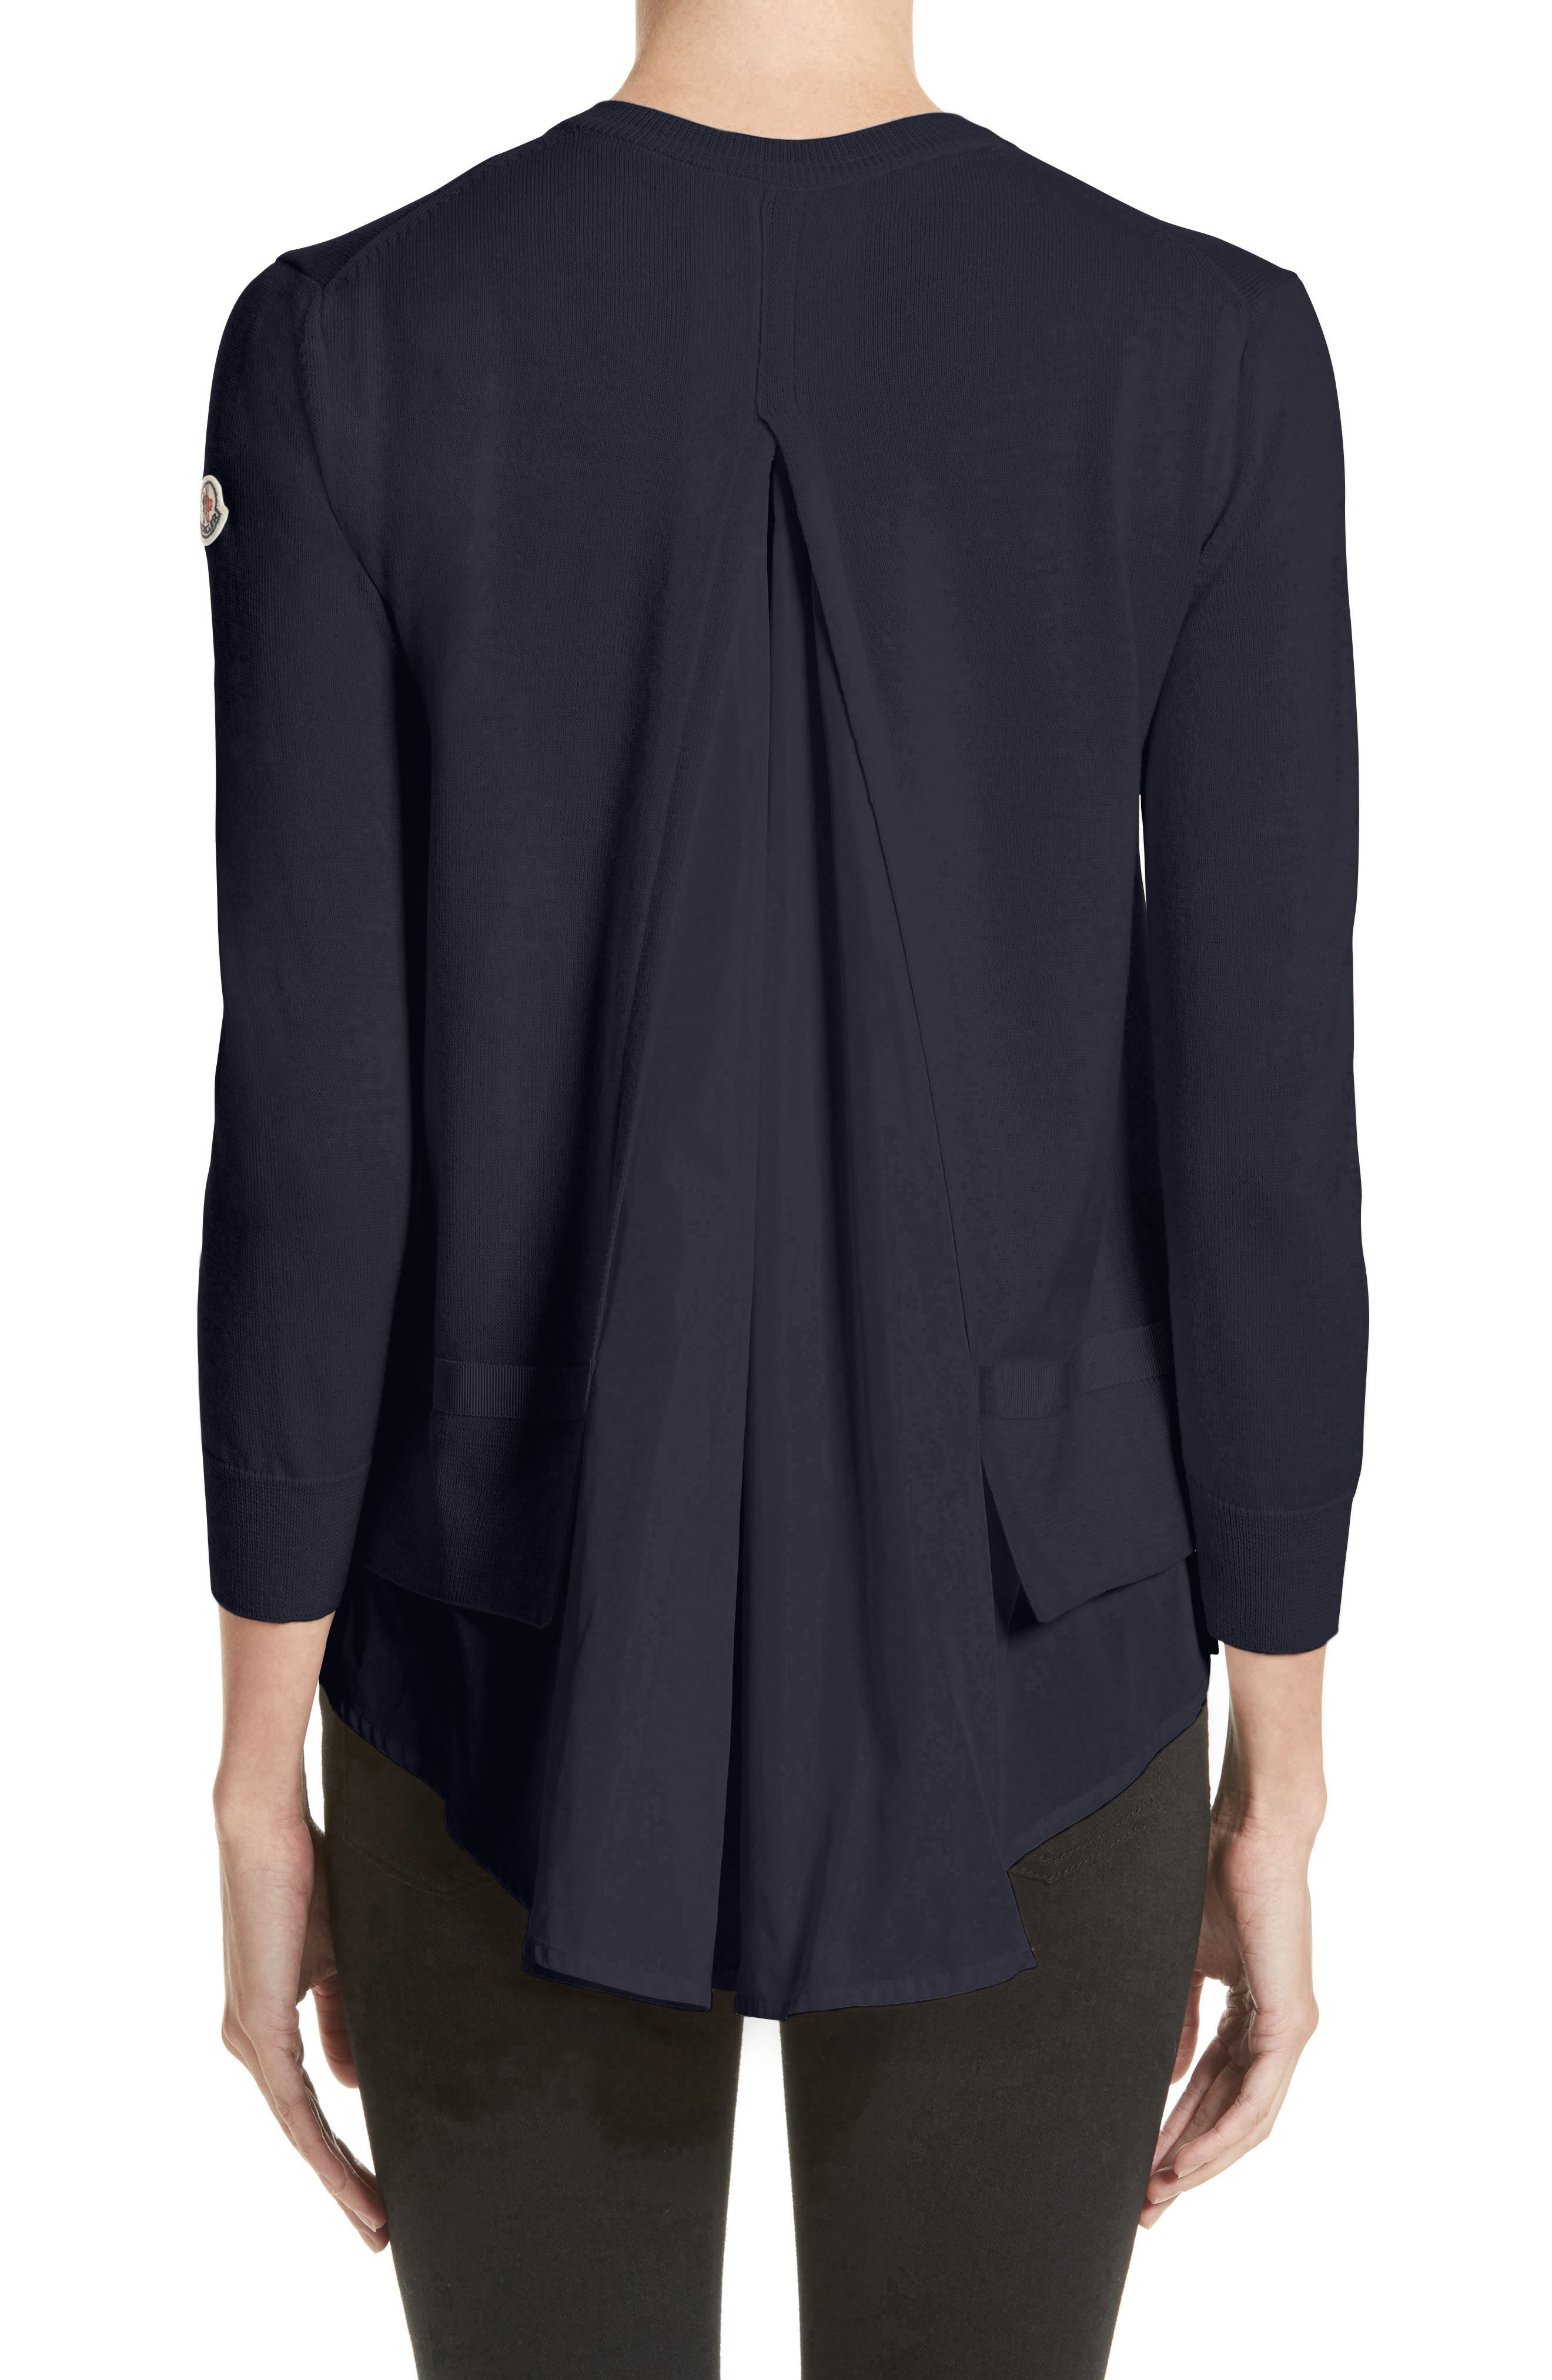 Tricot Cardigan,                             Alternate thumbnail 2, color,                             Navy